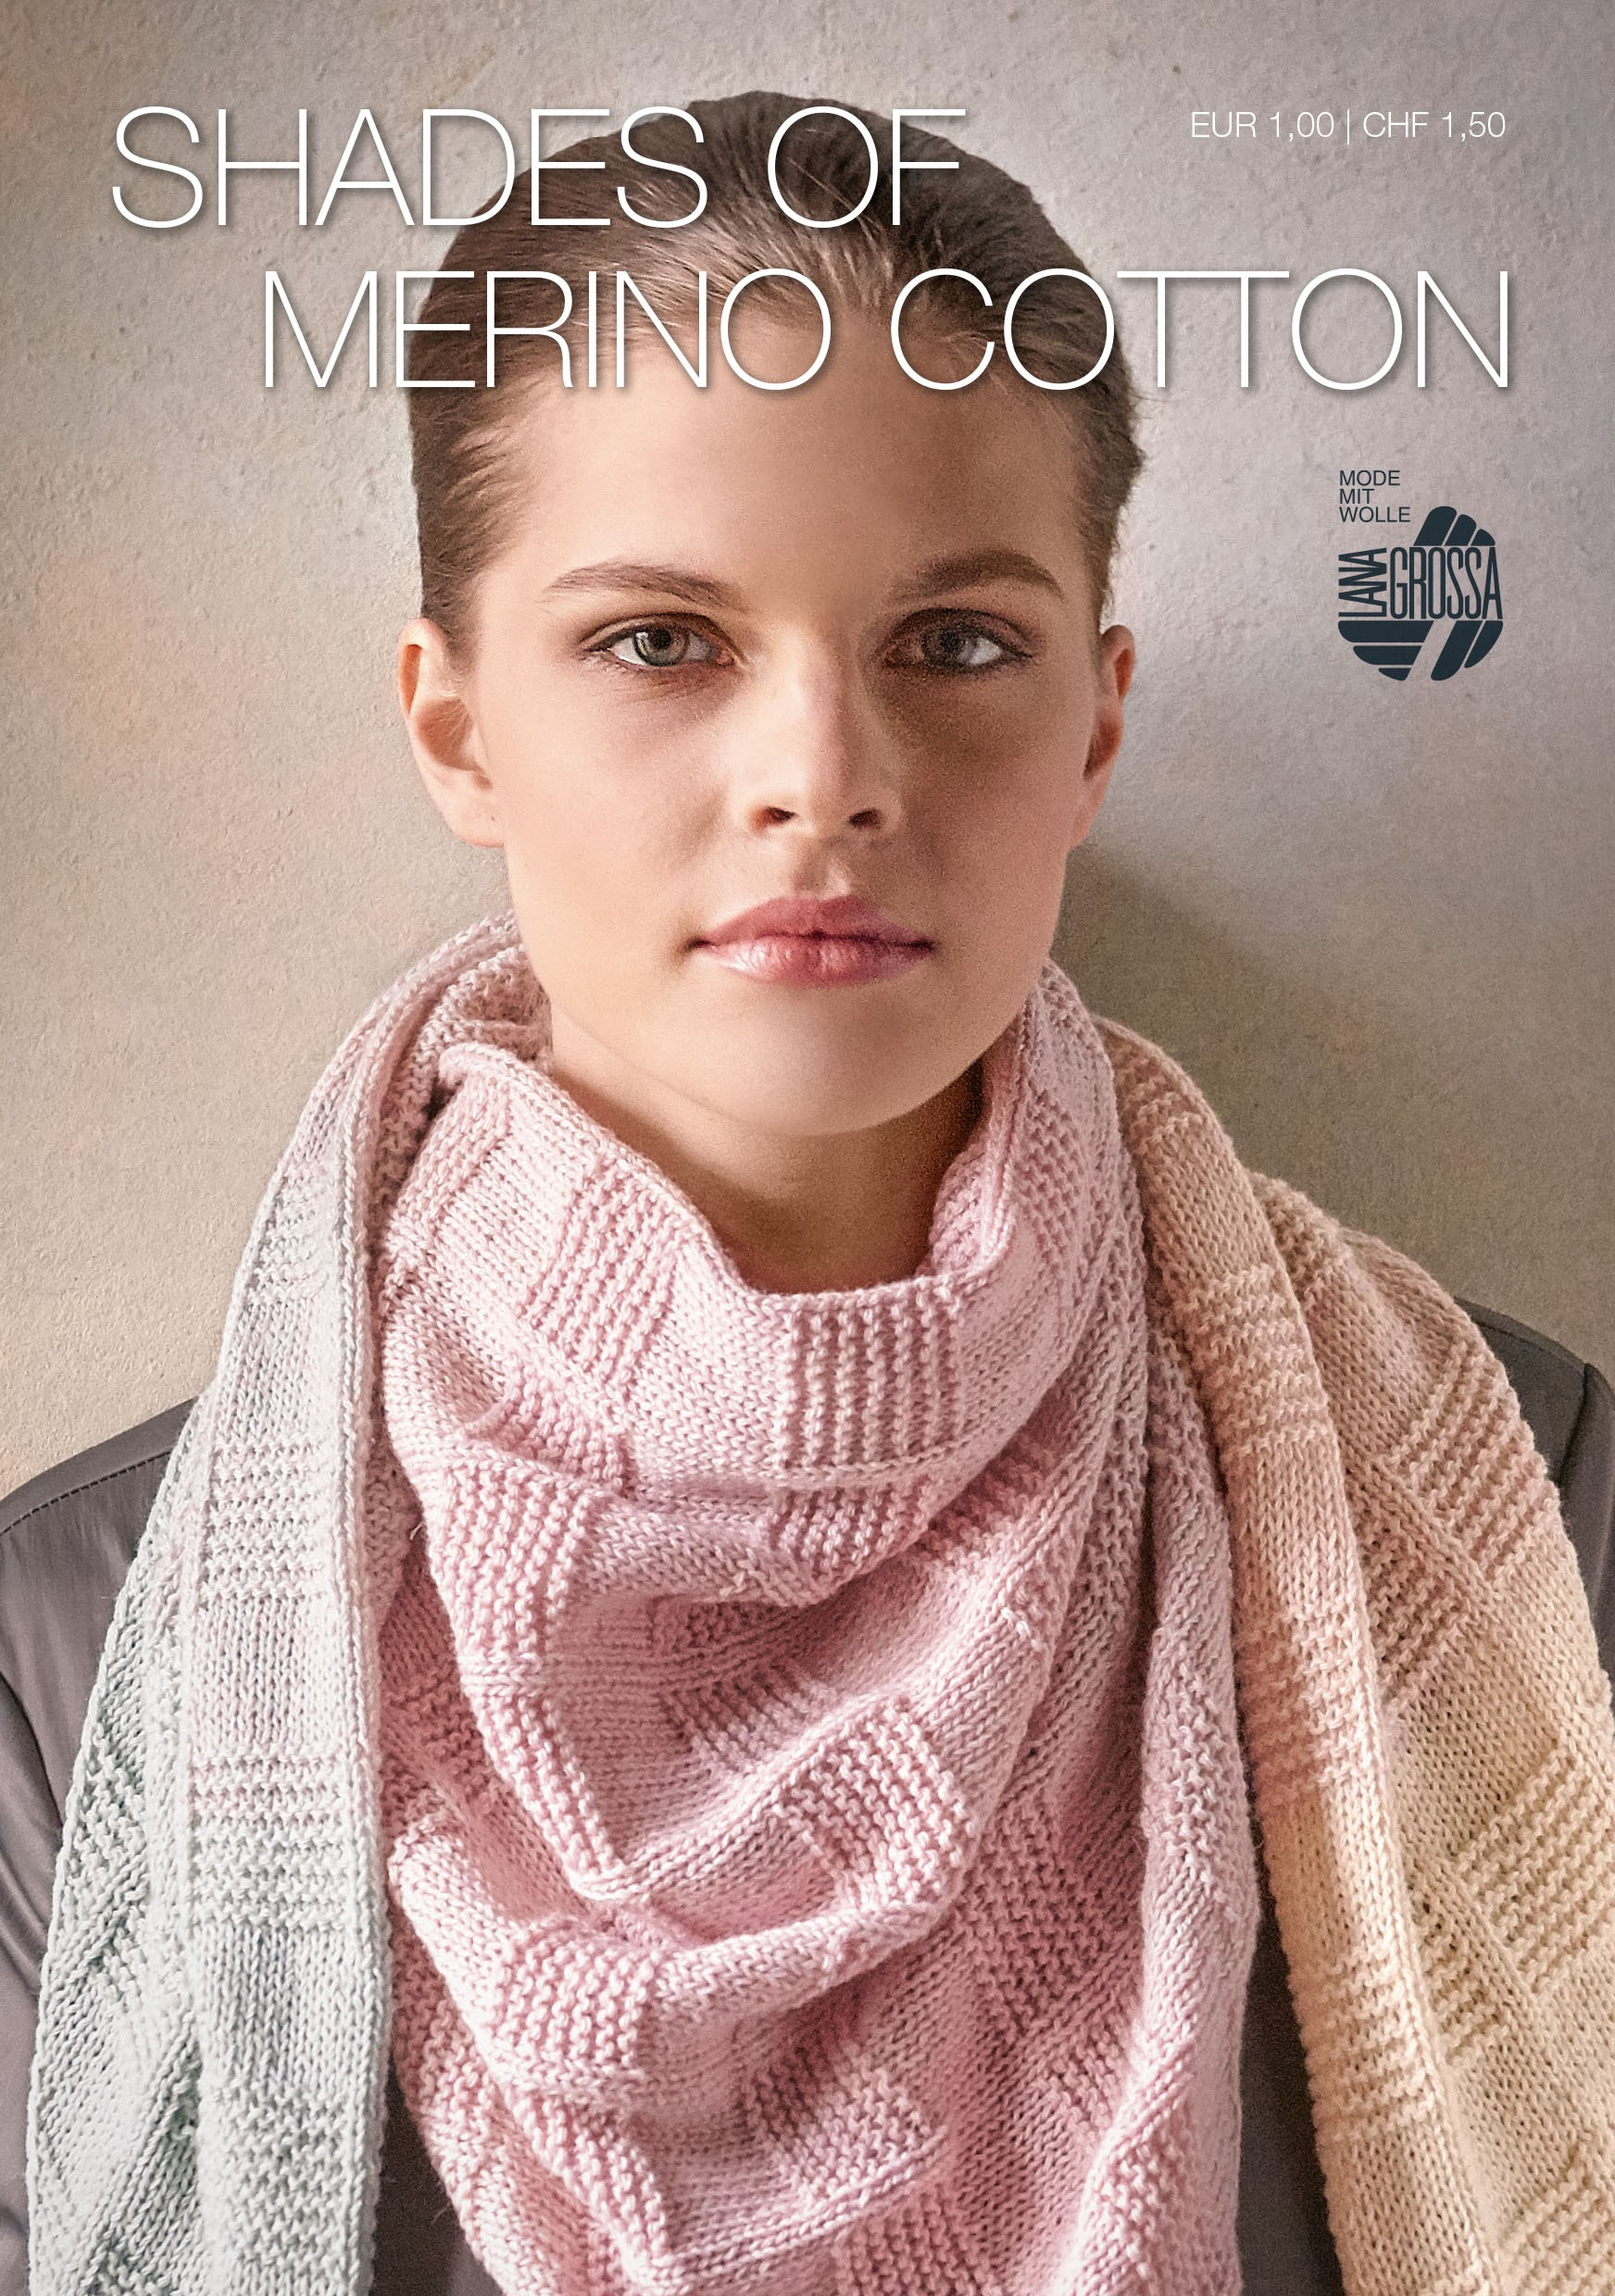 SHADES OF MERINO COTTON Flyer  von Lana Grossa